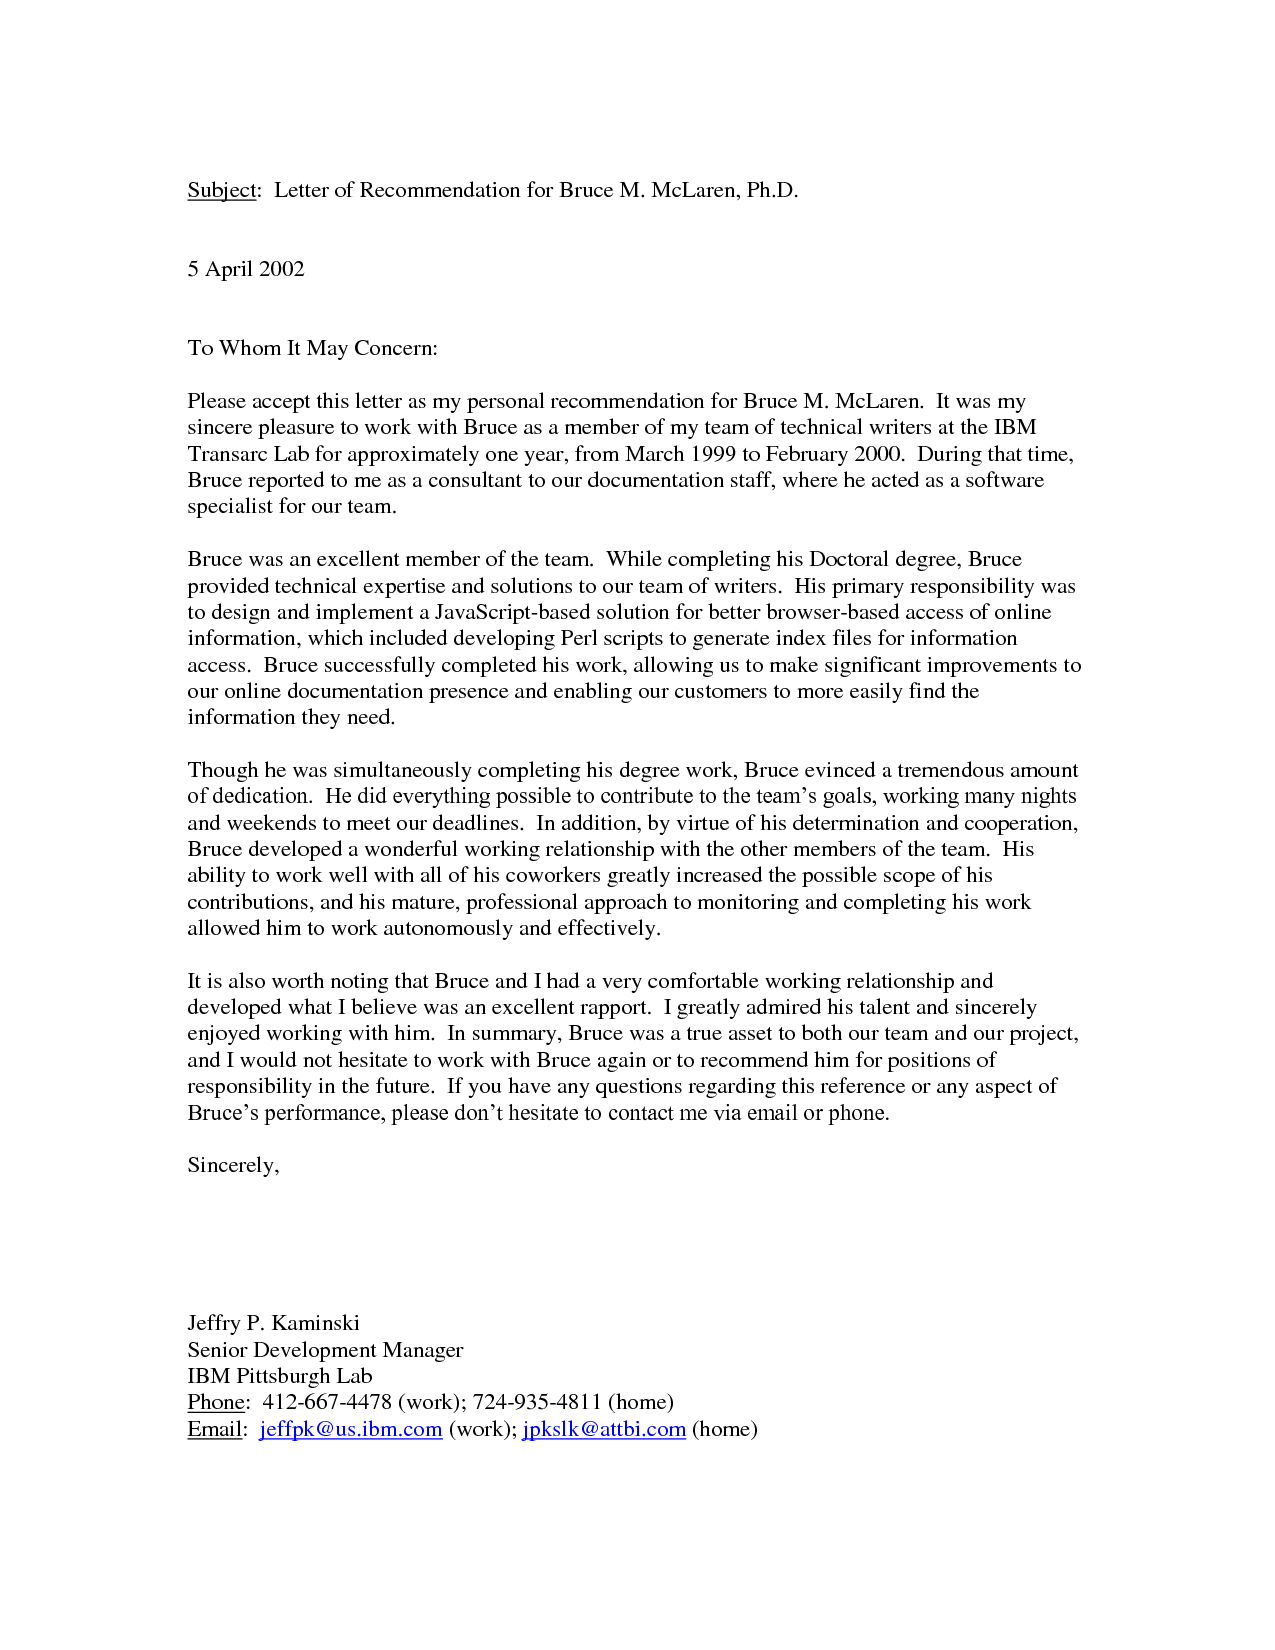 Personal Reference Letter Of Recommendationletter Of Recommendation